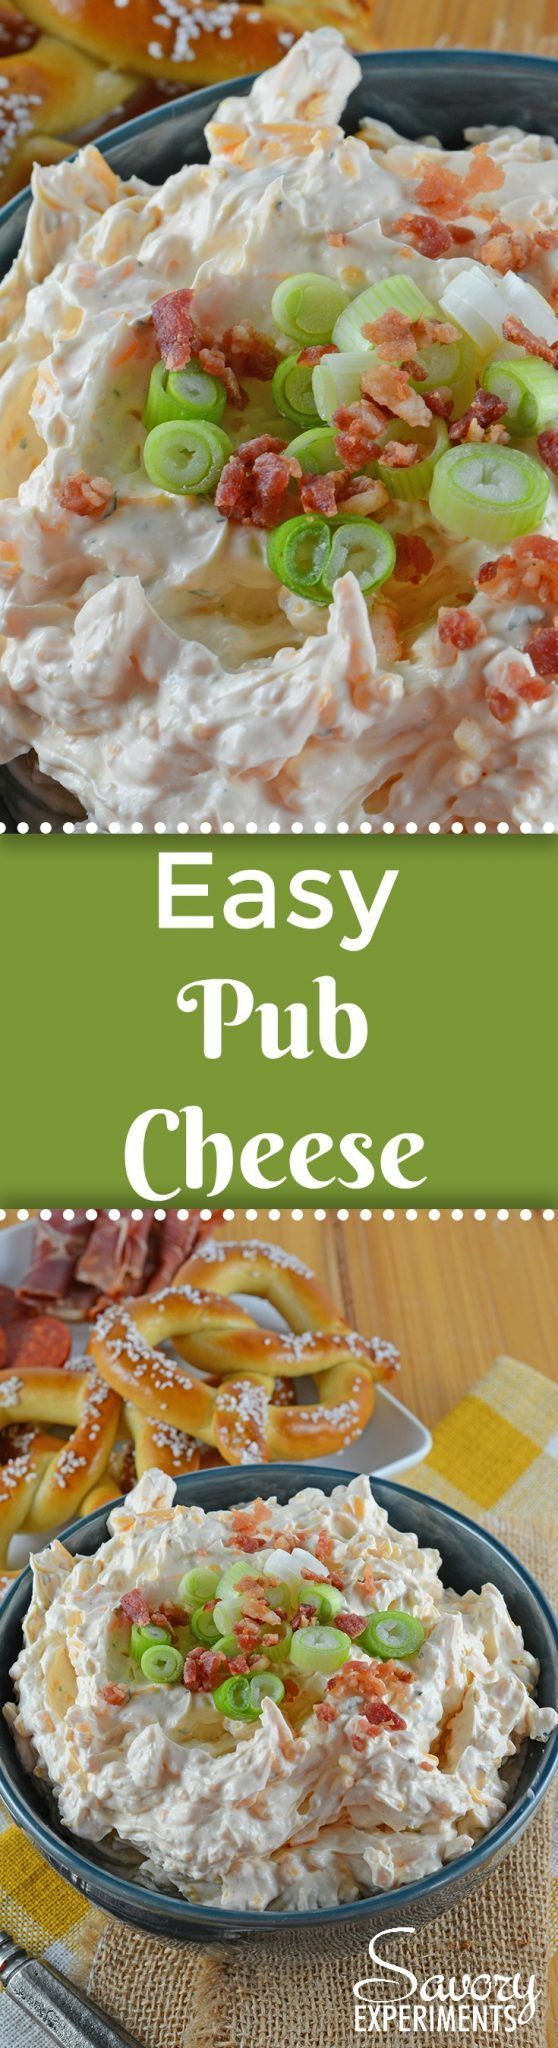 Easy Pub Cheese Recipe is a spreadable, zesty, no-cook appetizer in 5 just minutes! Serve with soft pretzels, carrot or celery sticks or chips! #pubcheese #nocookappetizers www.savoryexperiments.com via @savorycooking